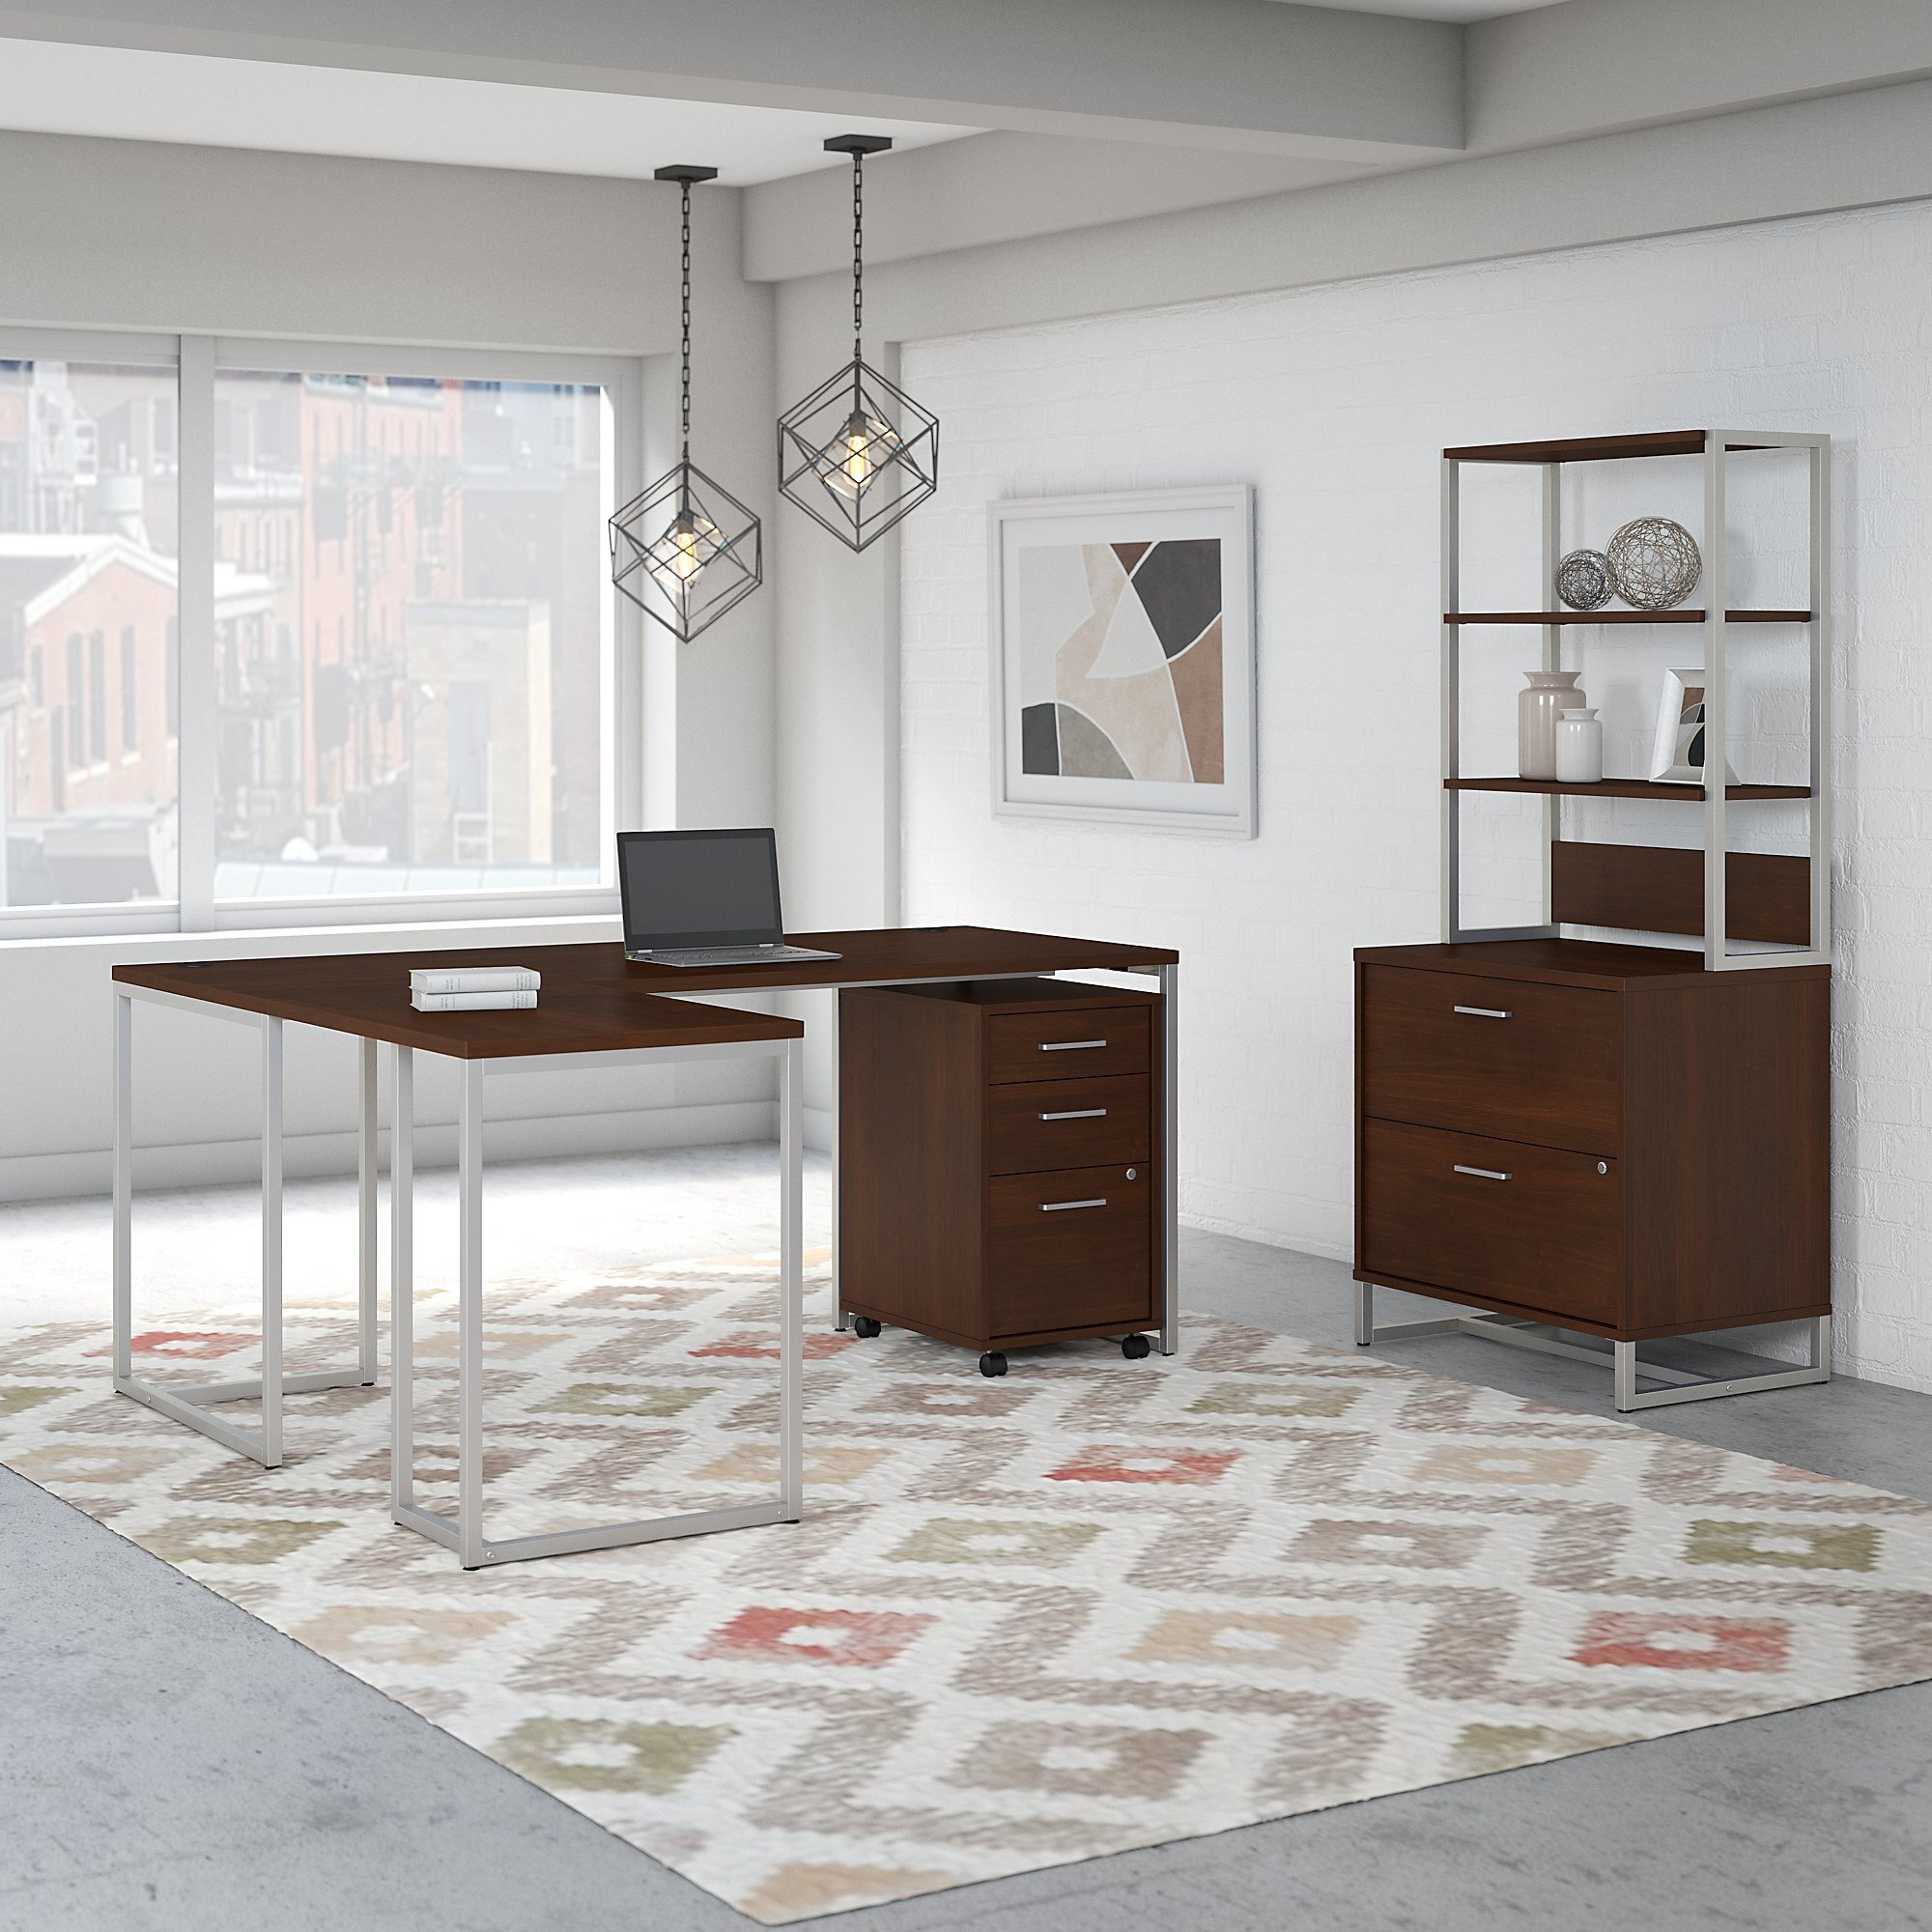 6 Piece Set Modern Contemporary Office Furniture Sets You Ll Love In 2021 Wayfair